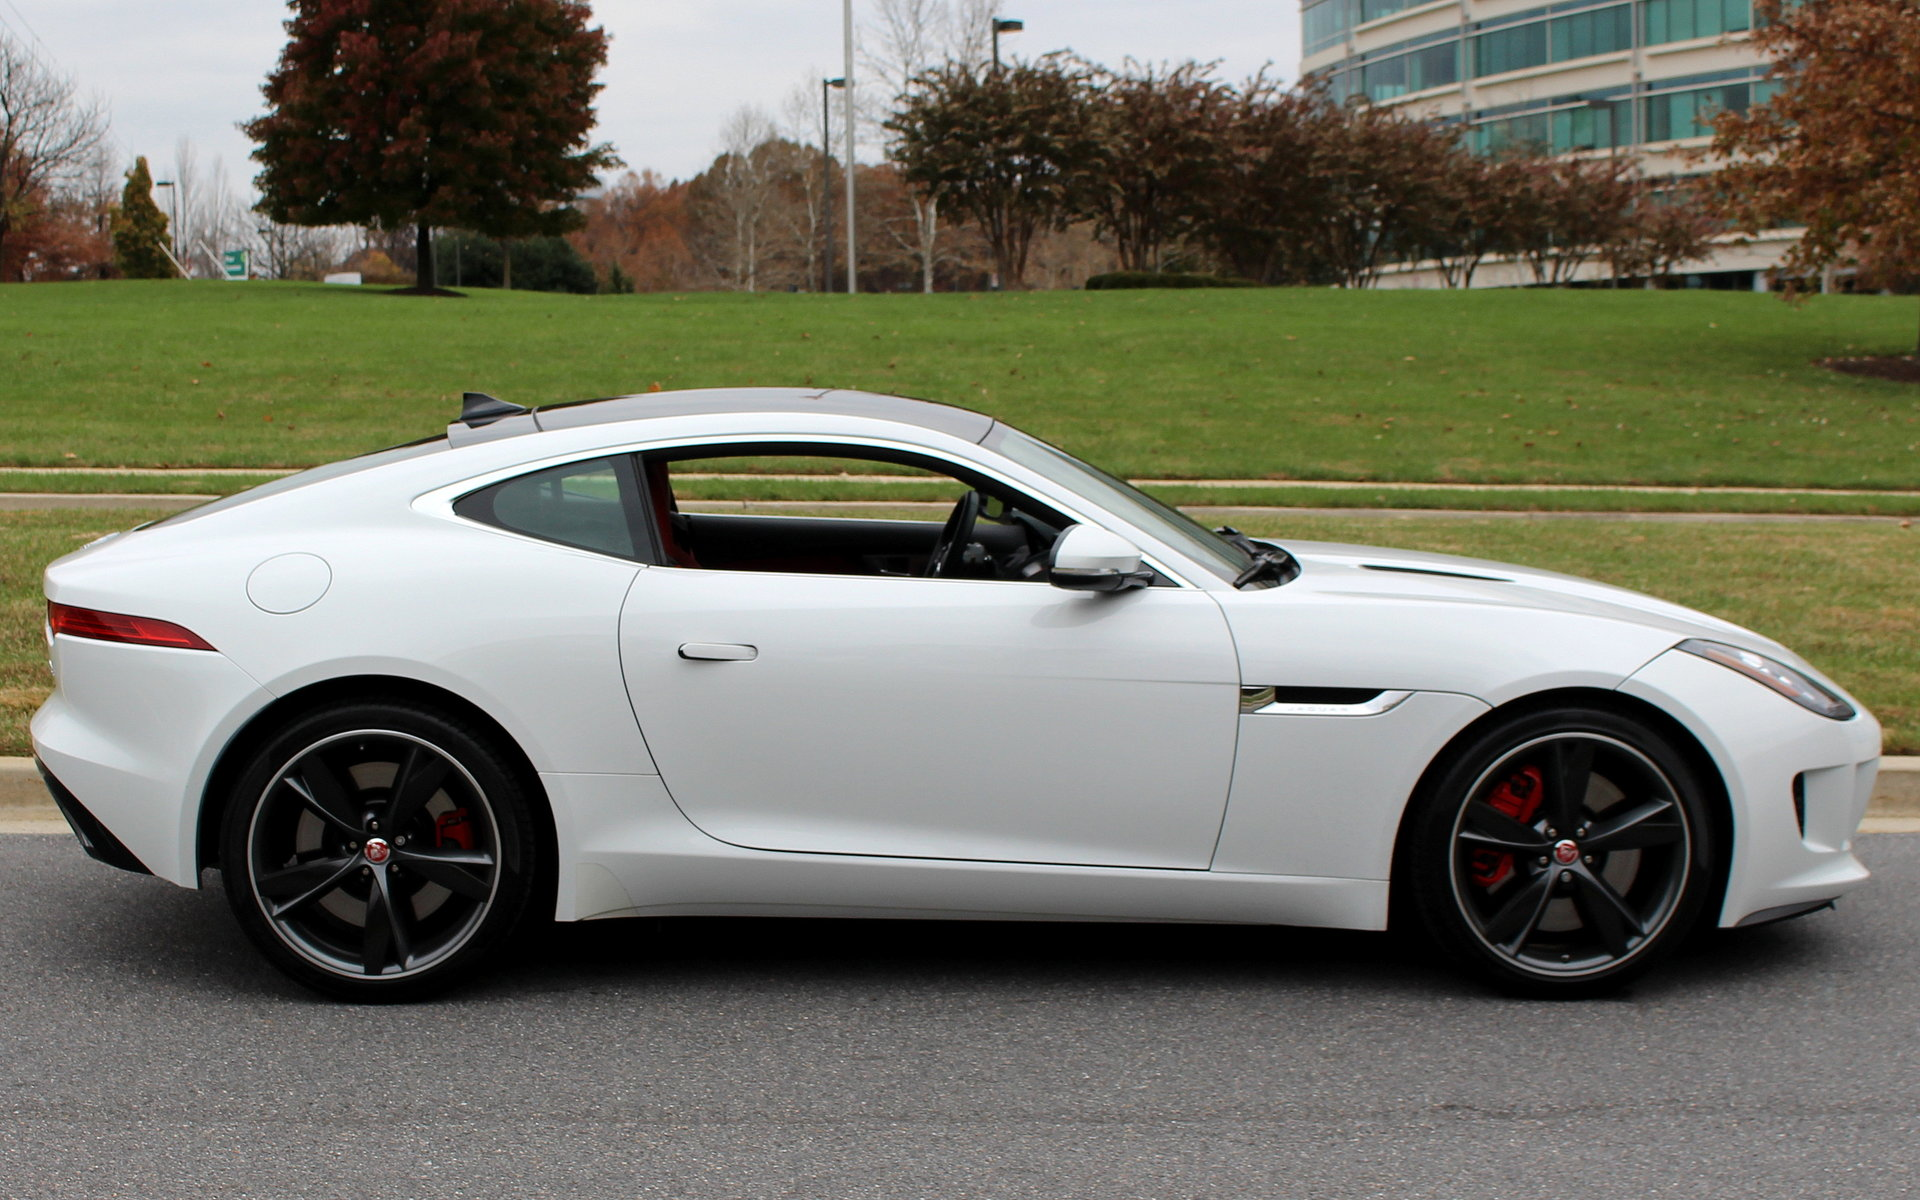 2015 jaguar f type s for sale 73295 mcg. Black Bedroom Furniture Sets. Home Design Ideas